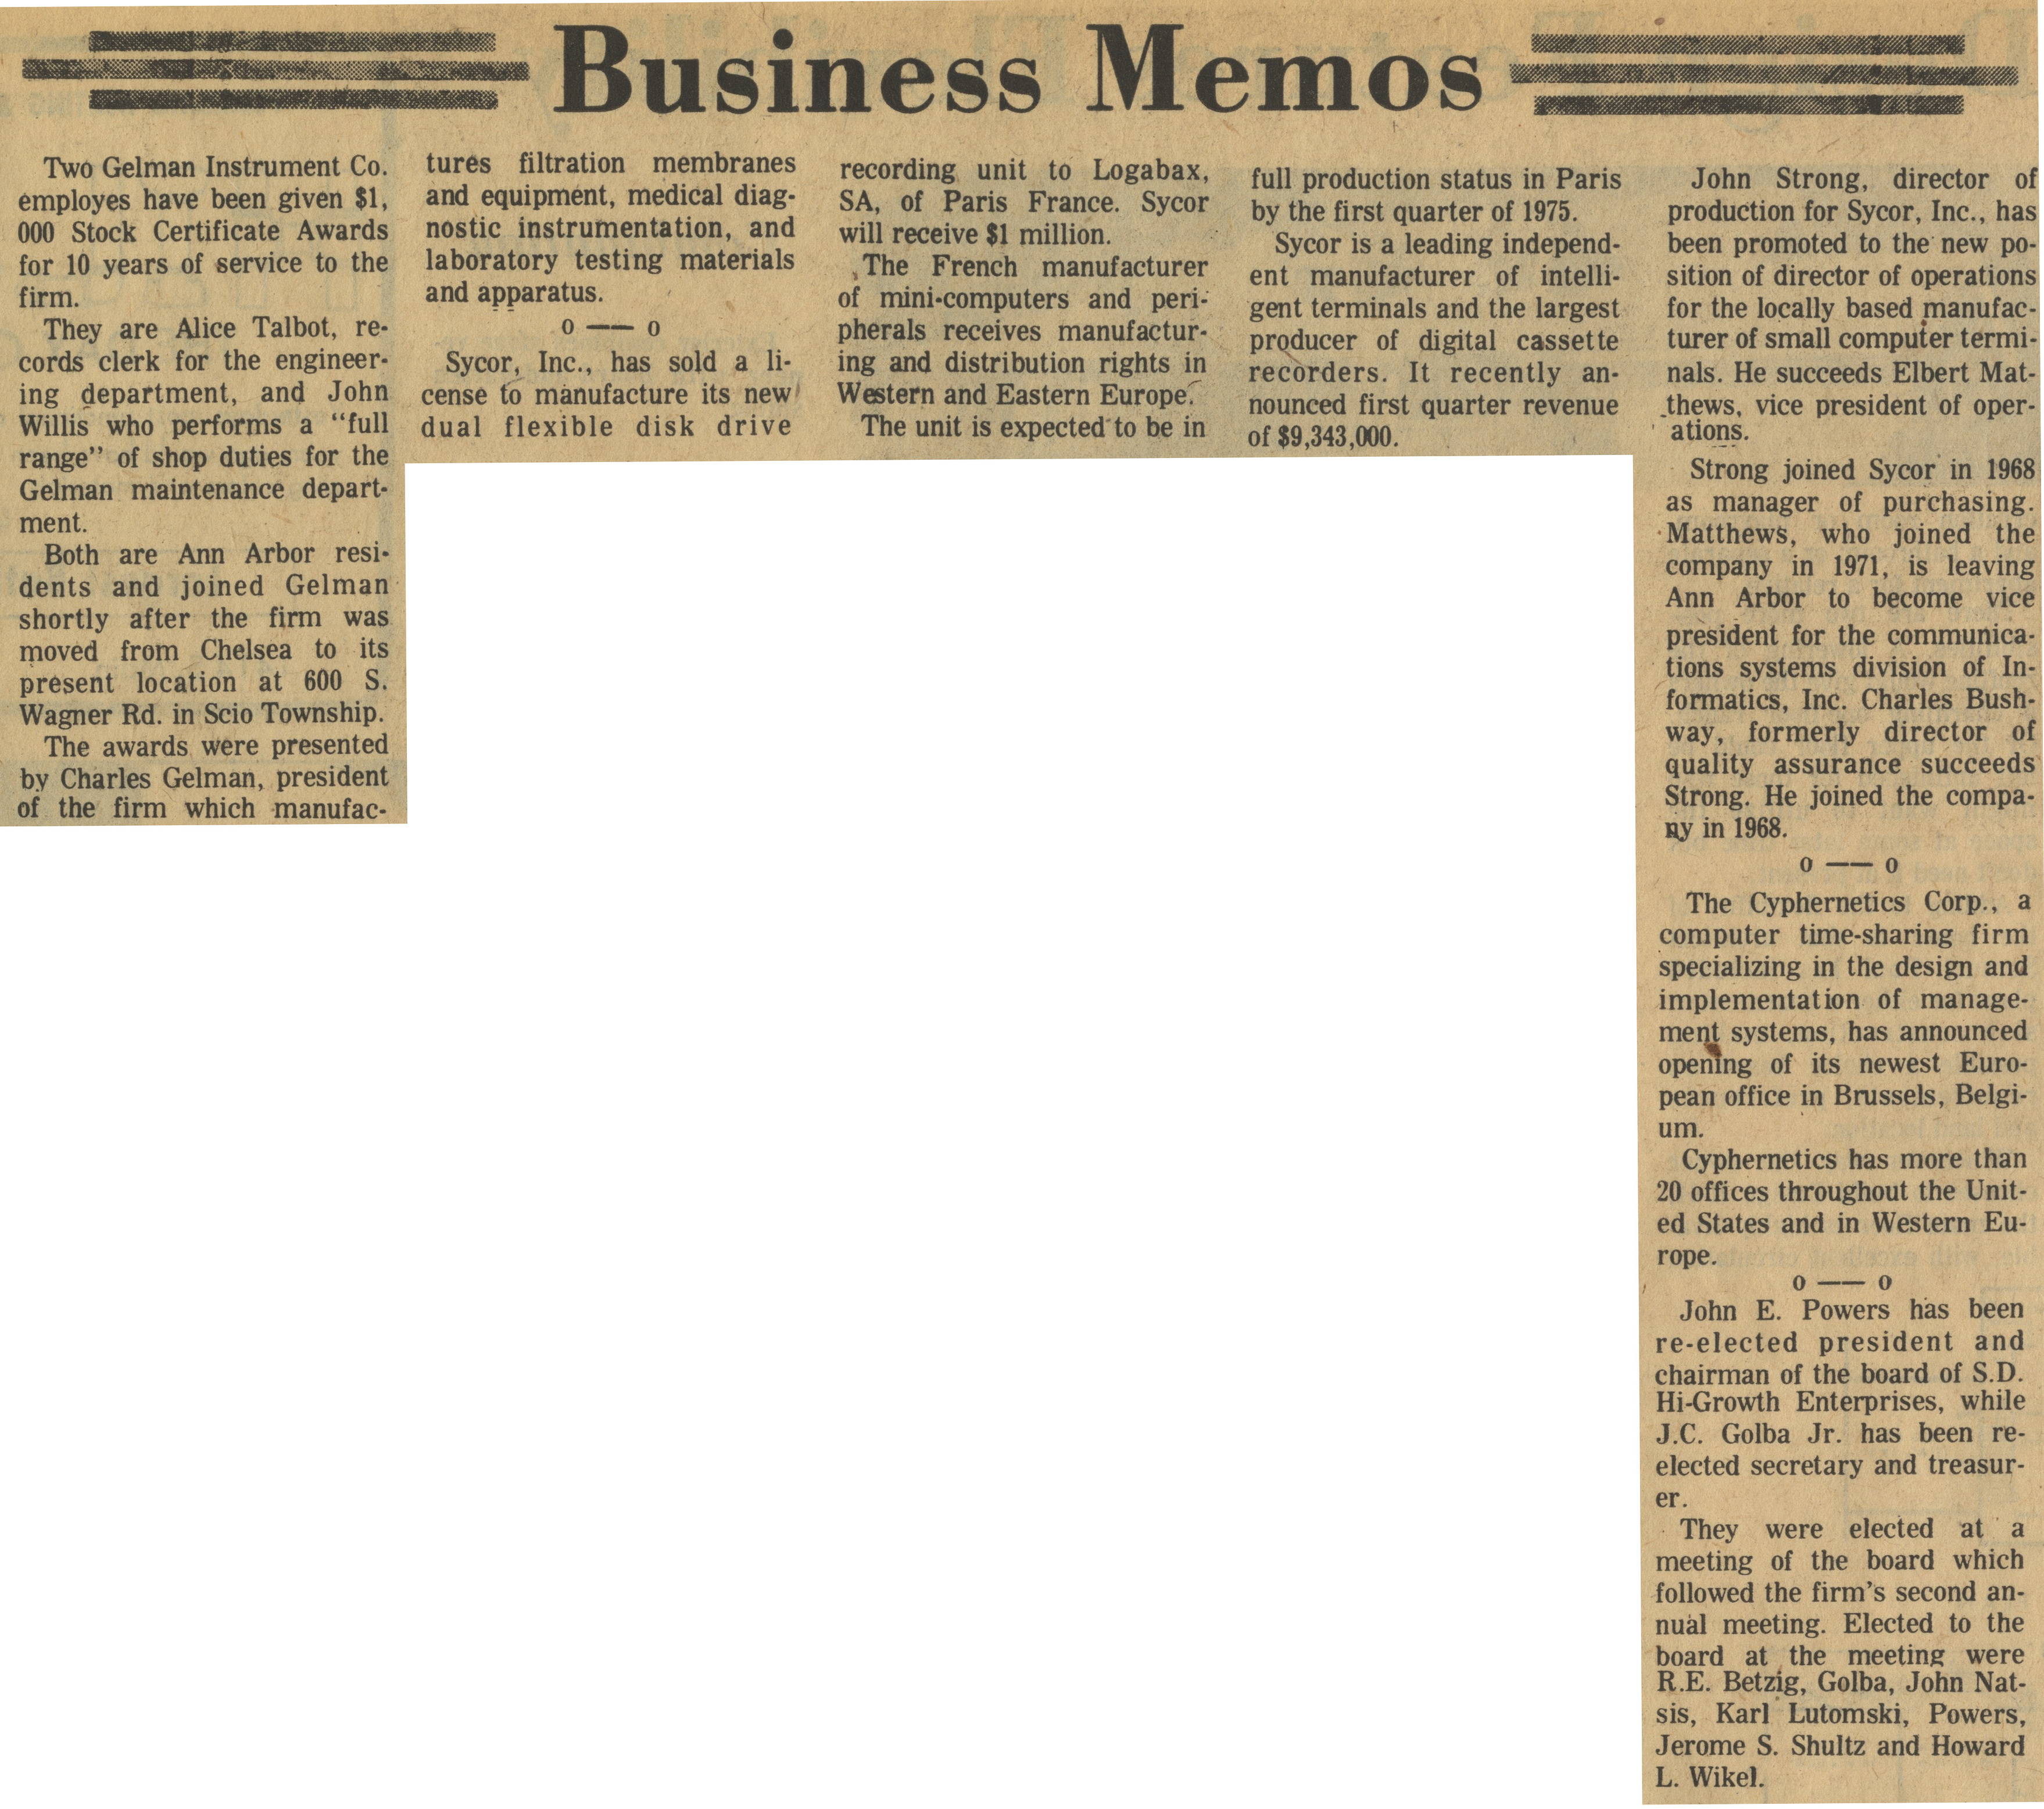 Business Memos image